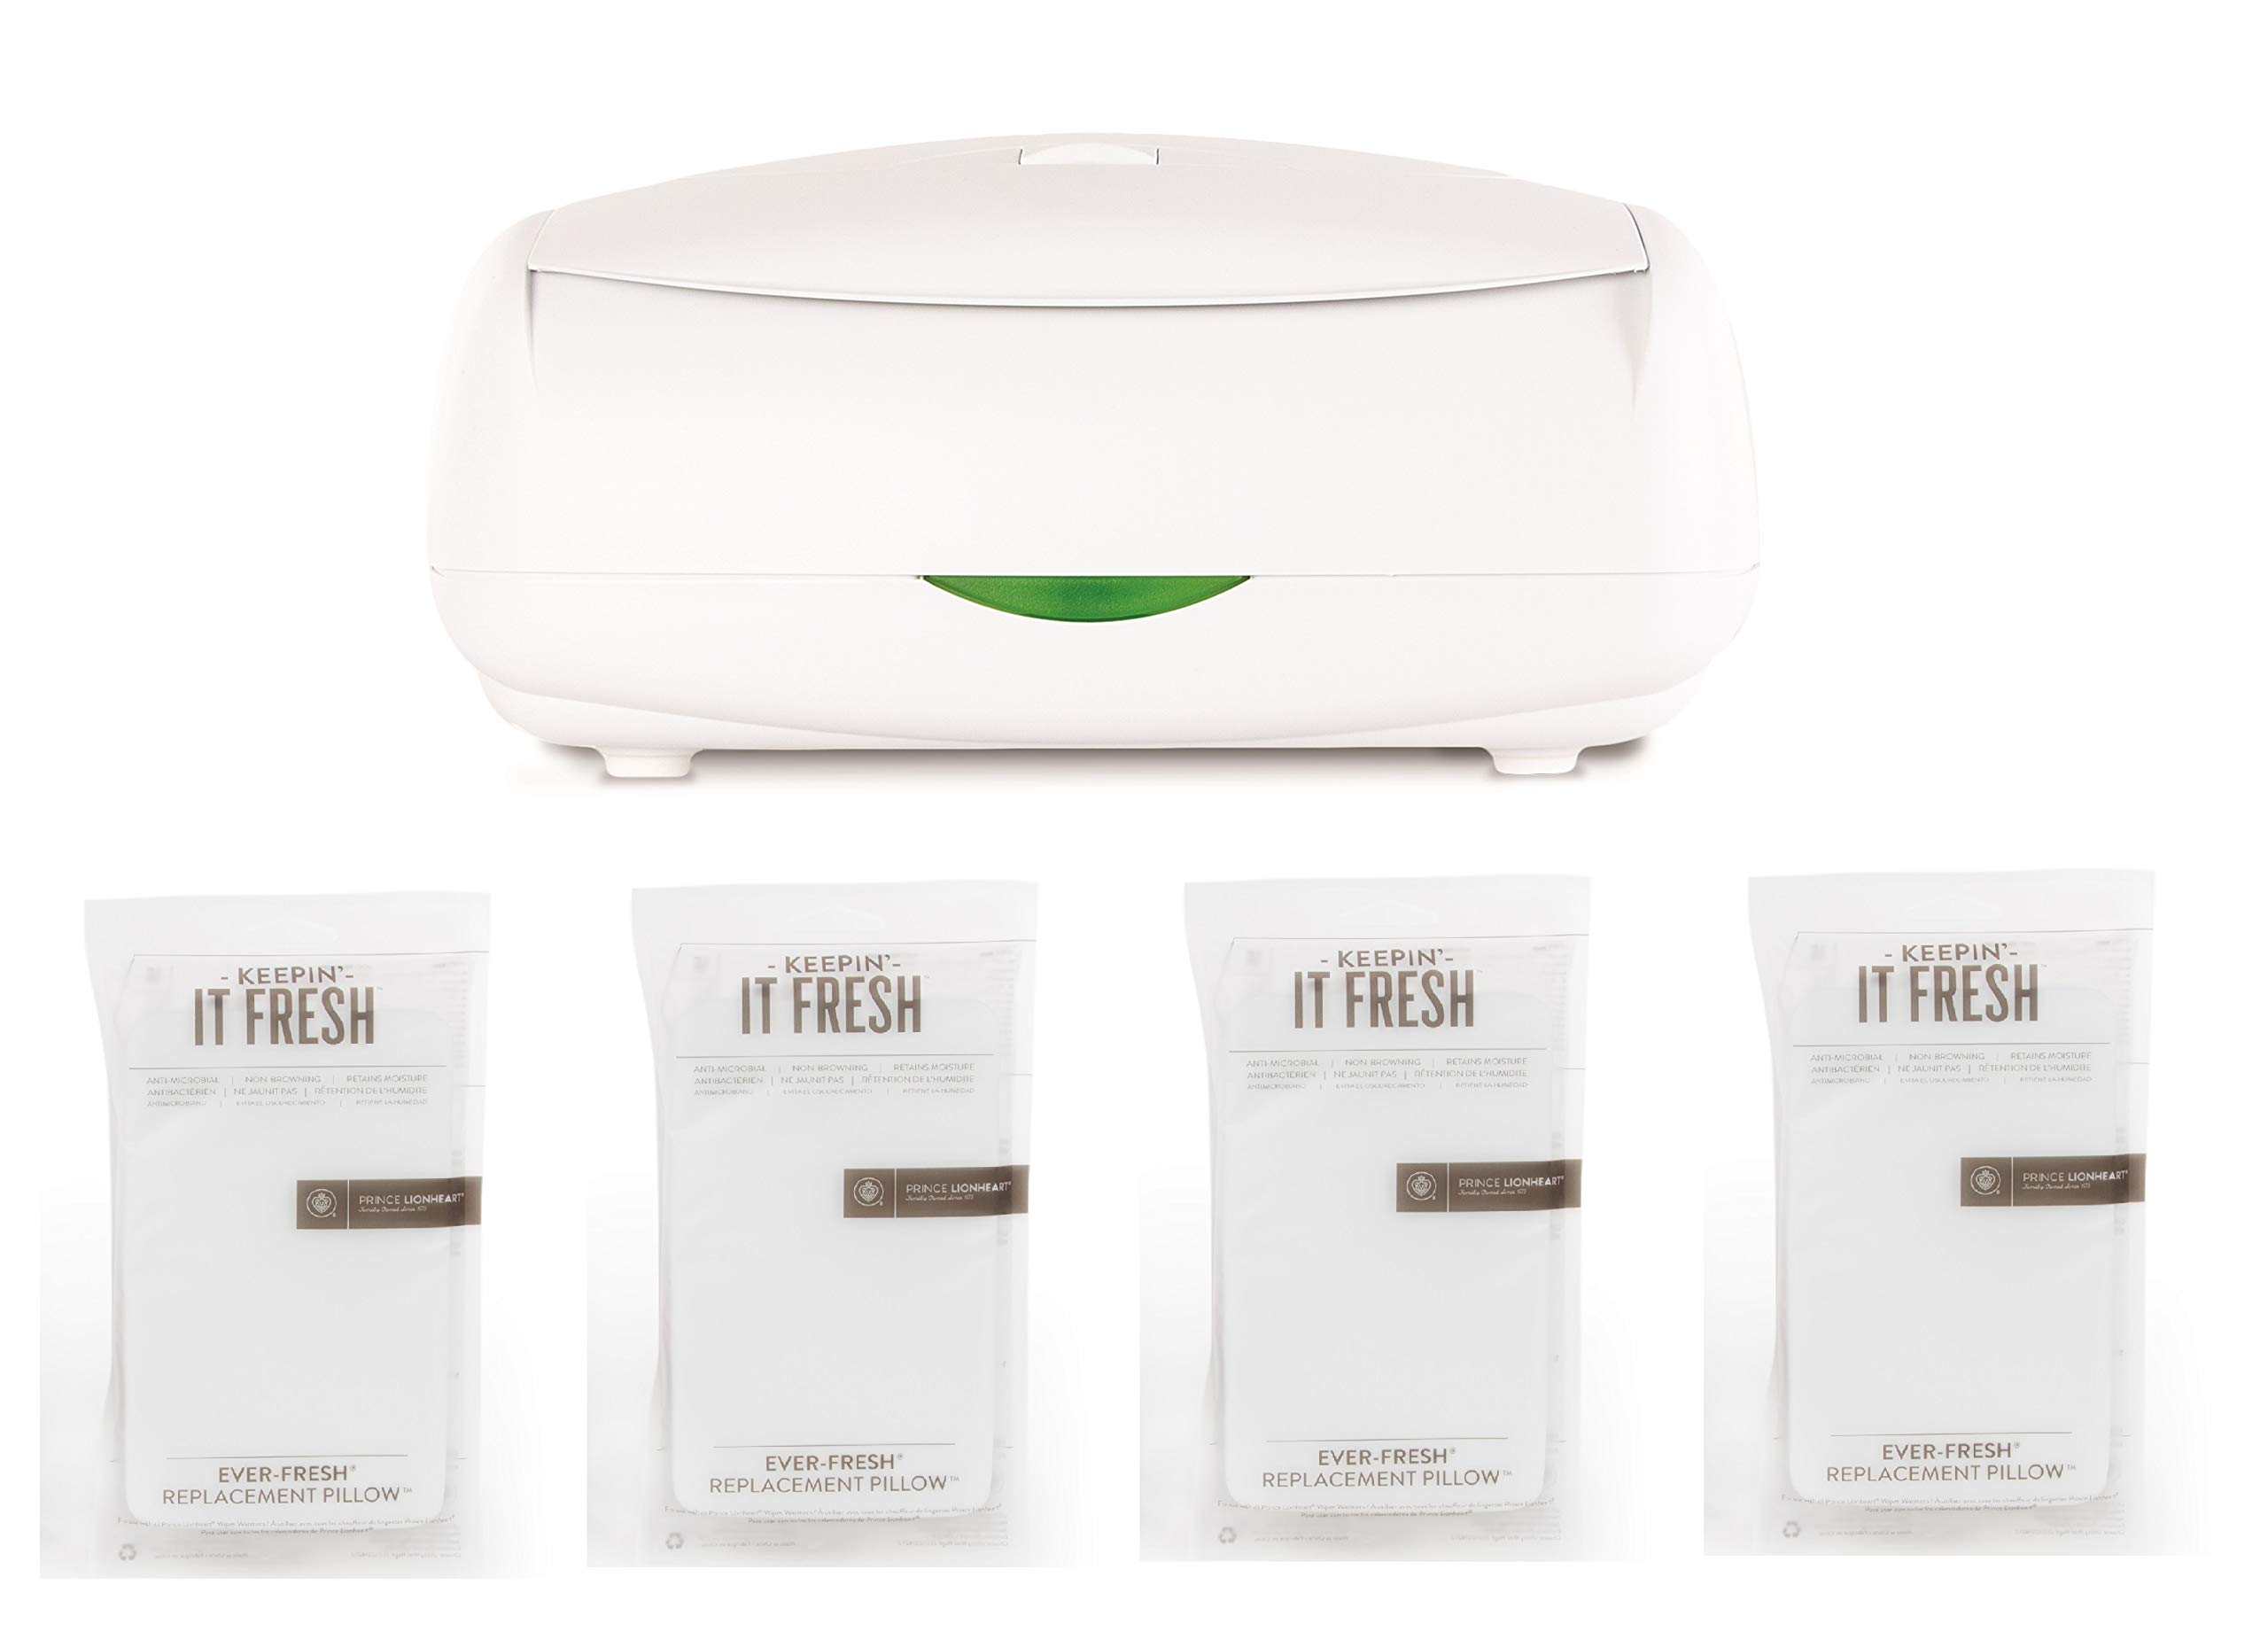 Prince Lionheart The Ultimate Wipes Warmer with an Integrated Nightlight. It Comes with 4 Replacement everFRESH Pillow System That Prevent Dry Out by Prince Lionheart